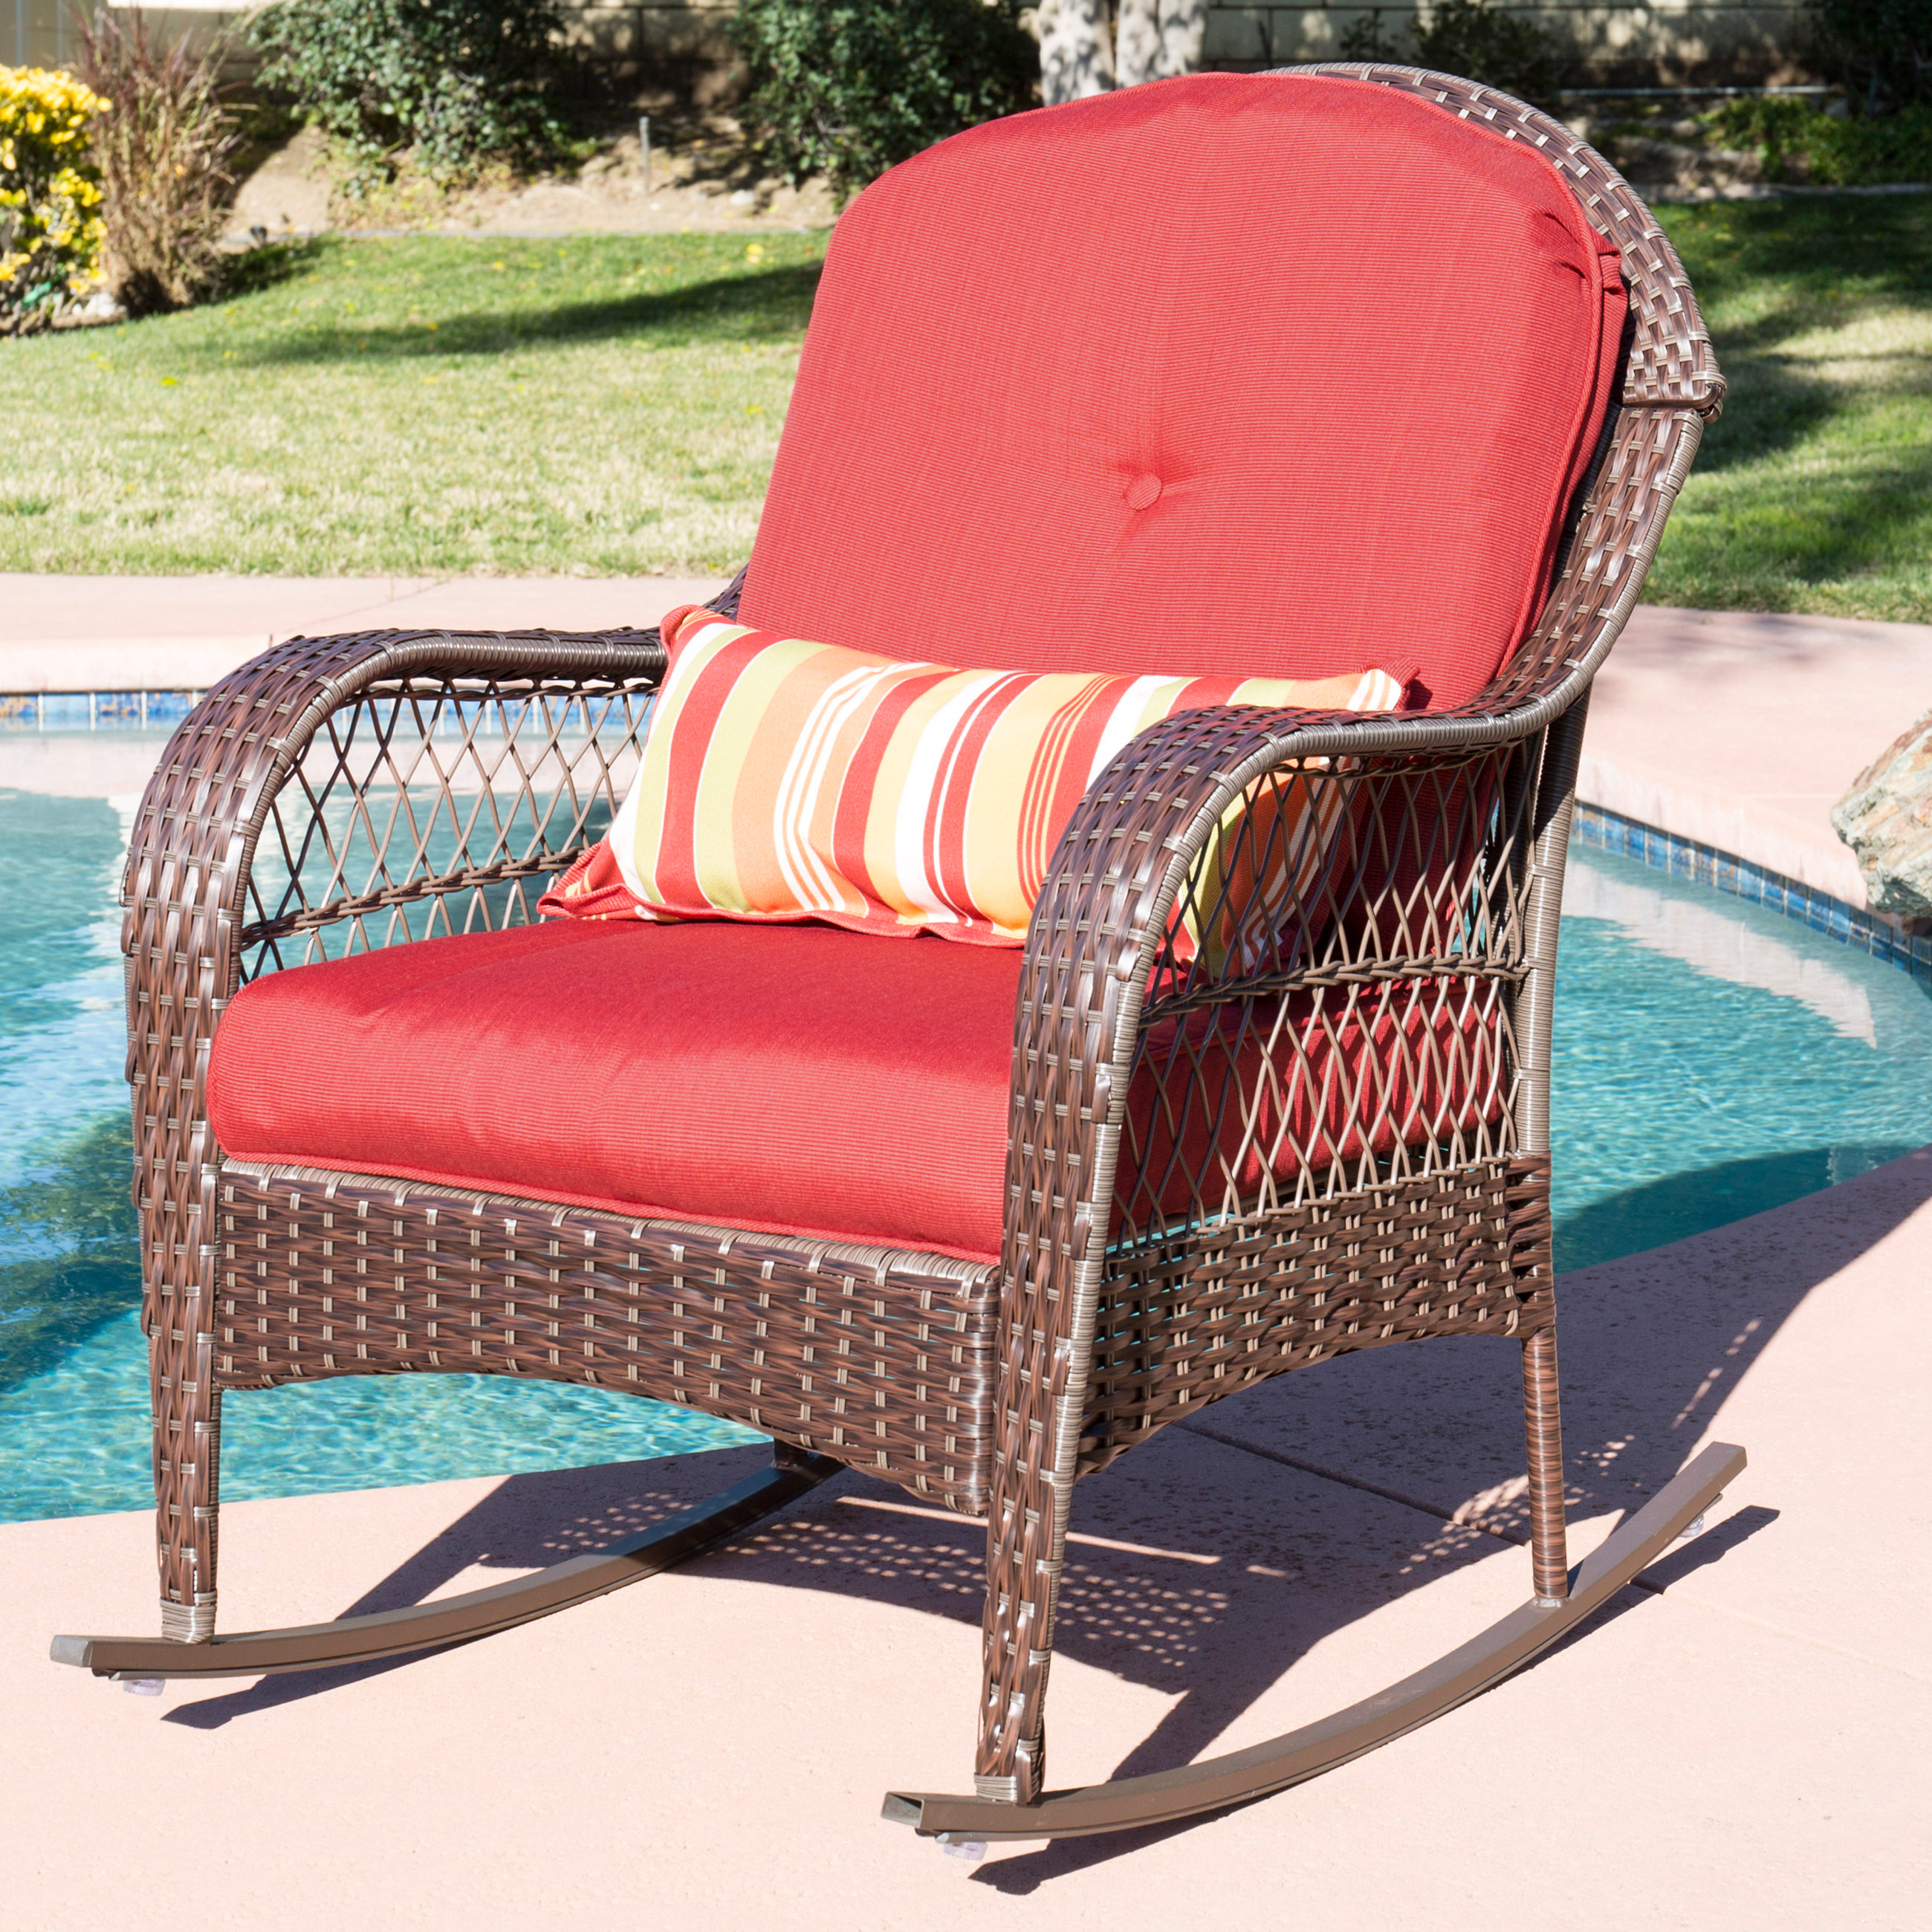 Wicker Rocking Chair Patio Porch Deck Furniture All Weather Proof